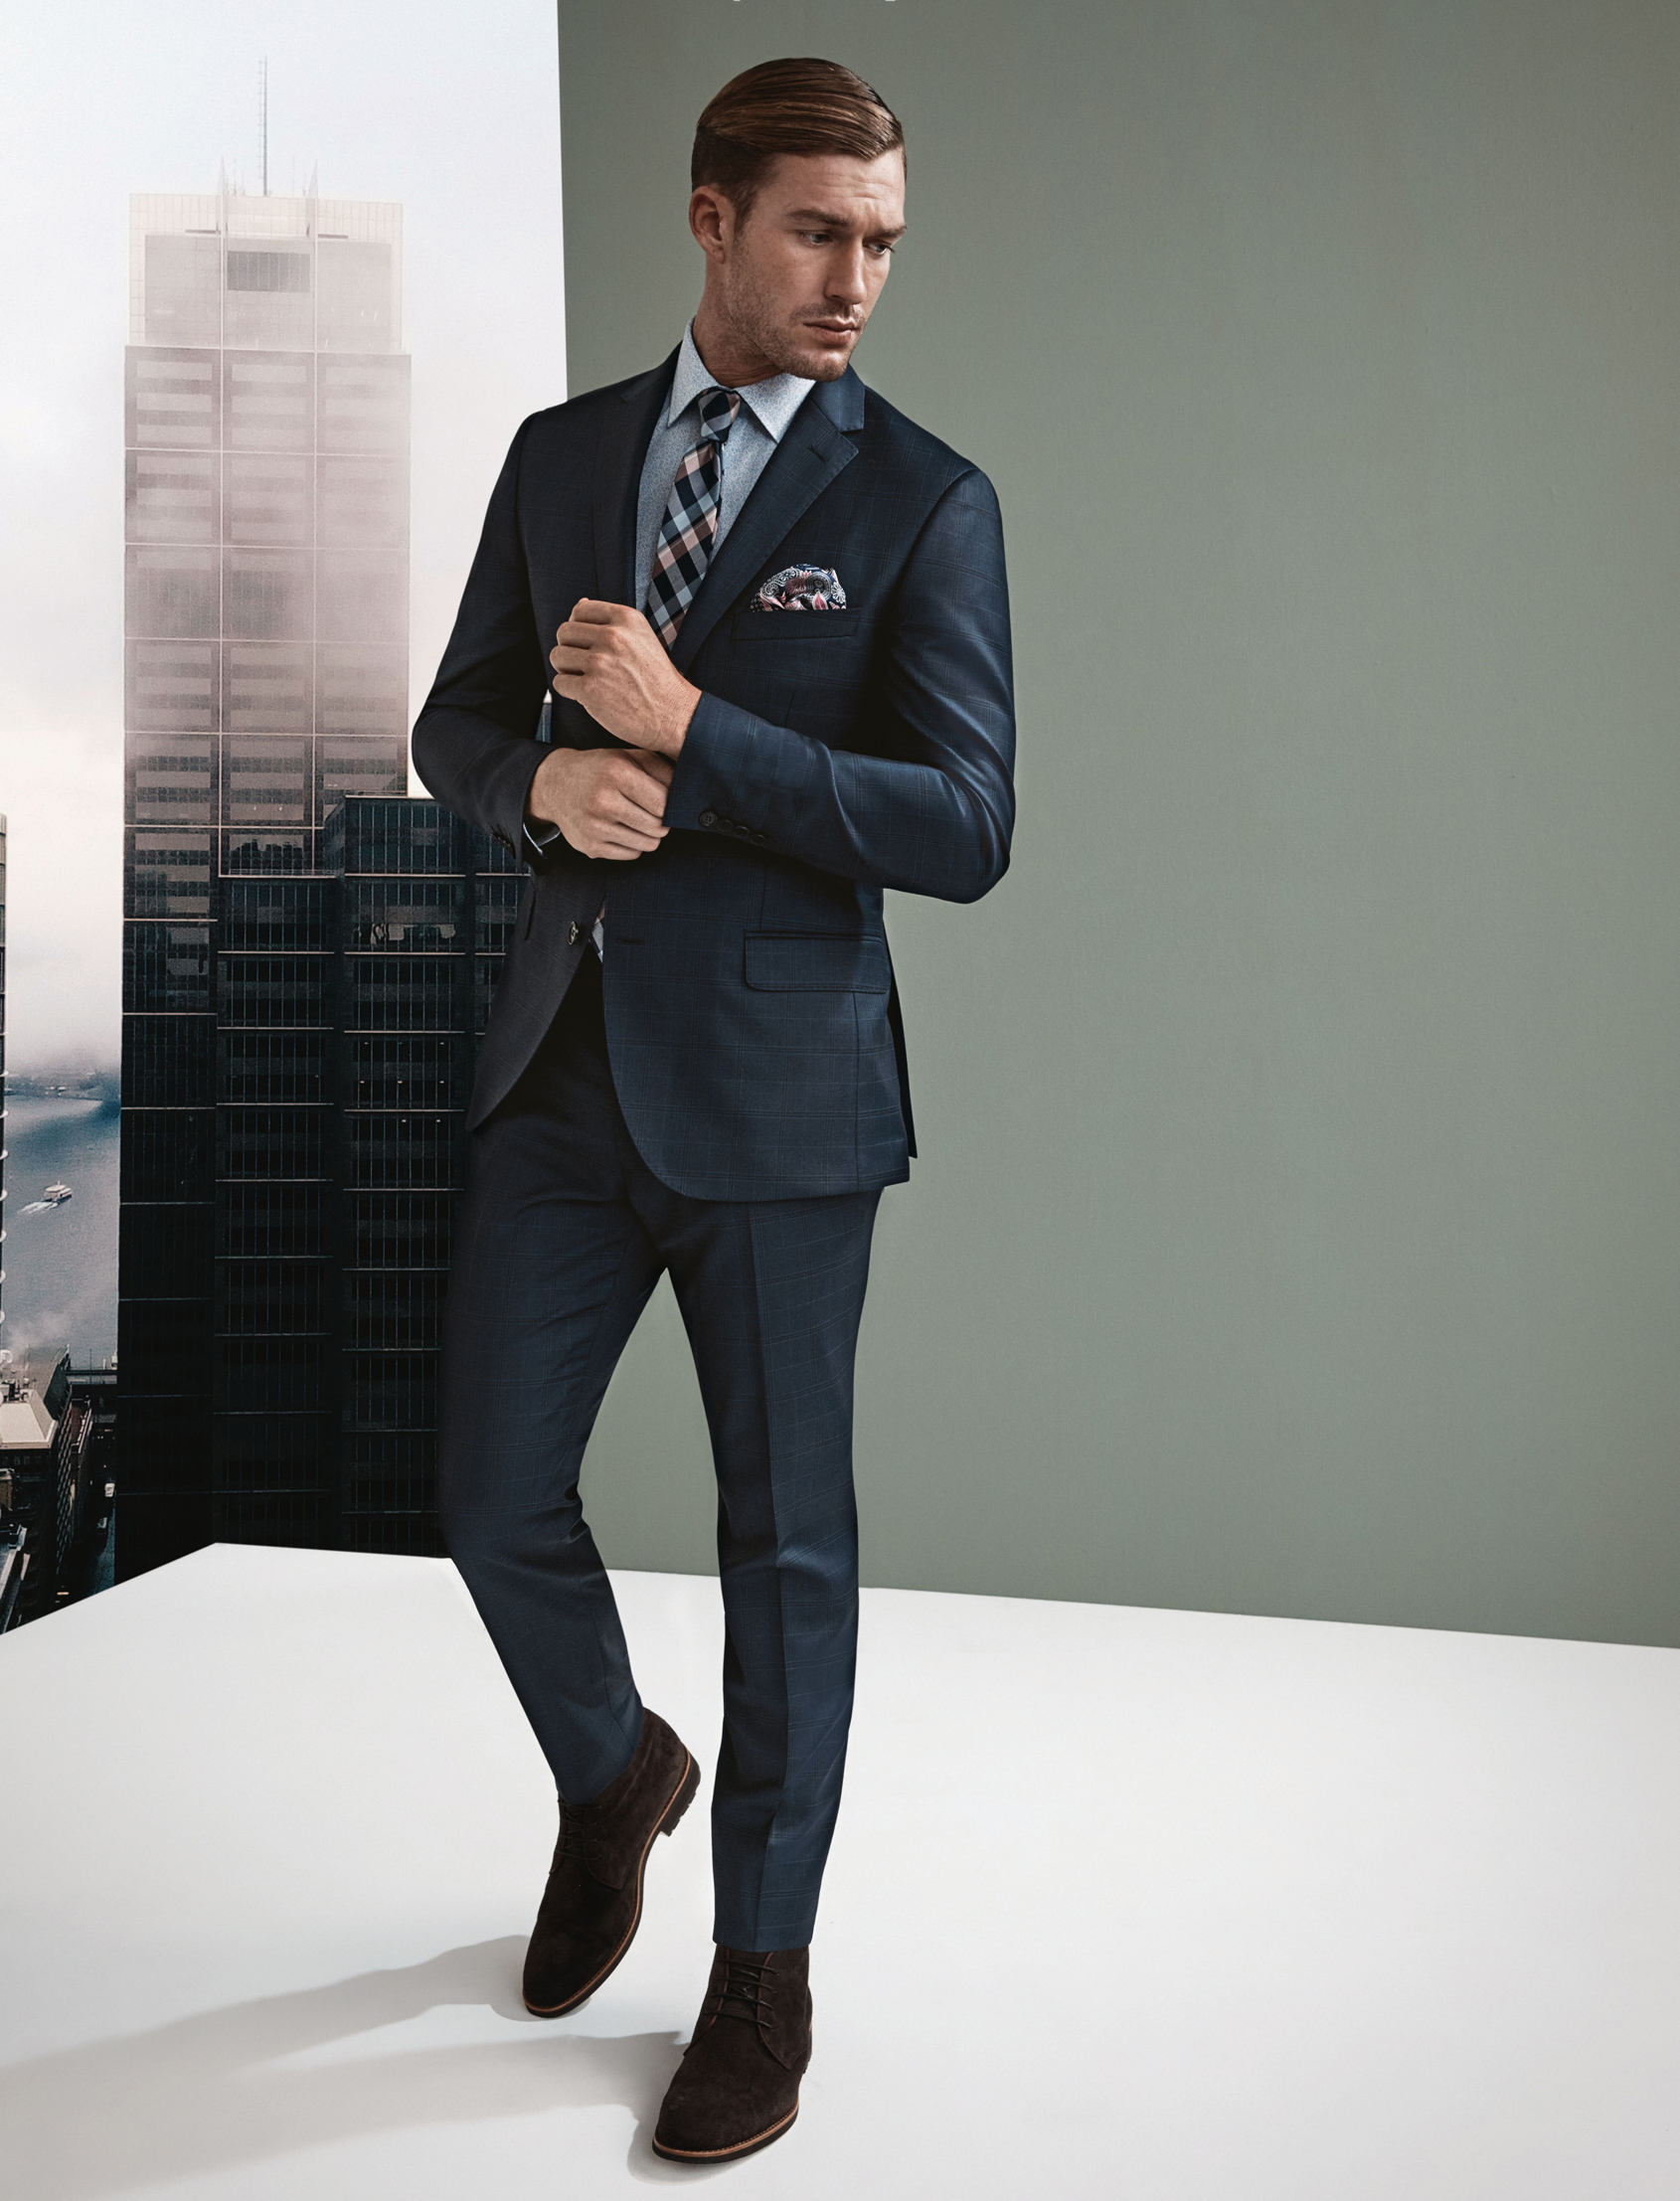 8c4c55f985c9 Mens Fashion  Why You Need A Made to Measure Suit